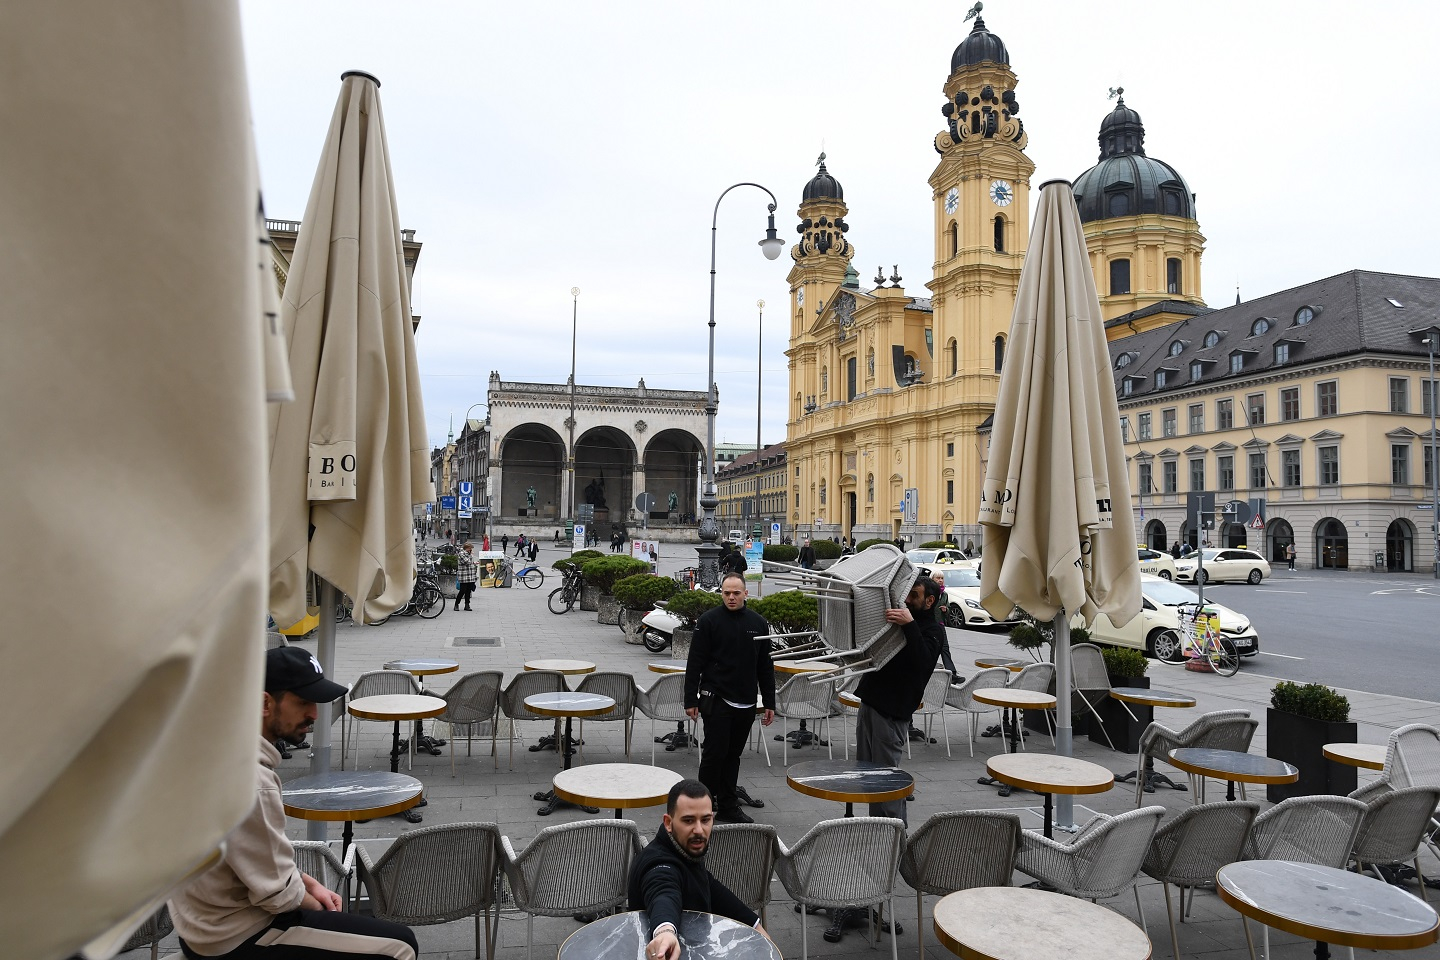 A photograph of employees at cafe Odeonsplatz removing chairs and tables from the terrace due to earlier closing hours on March 17, 2020 in Munich, Germany.